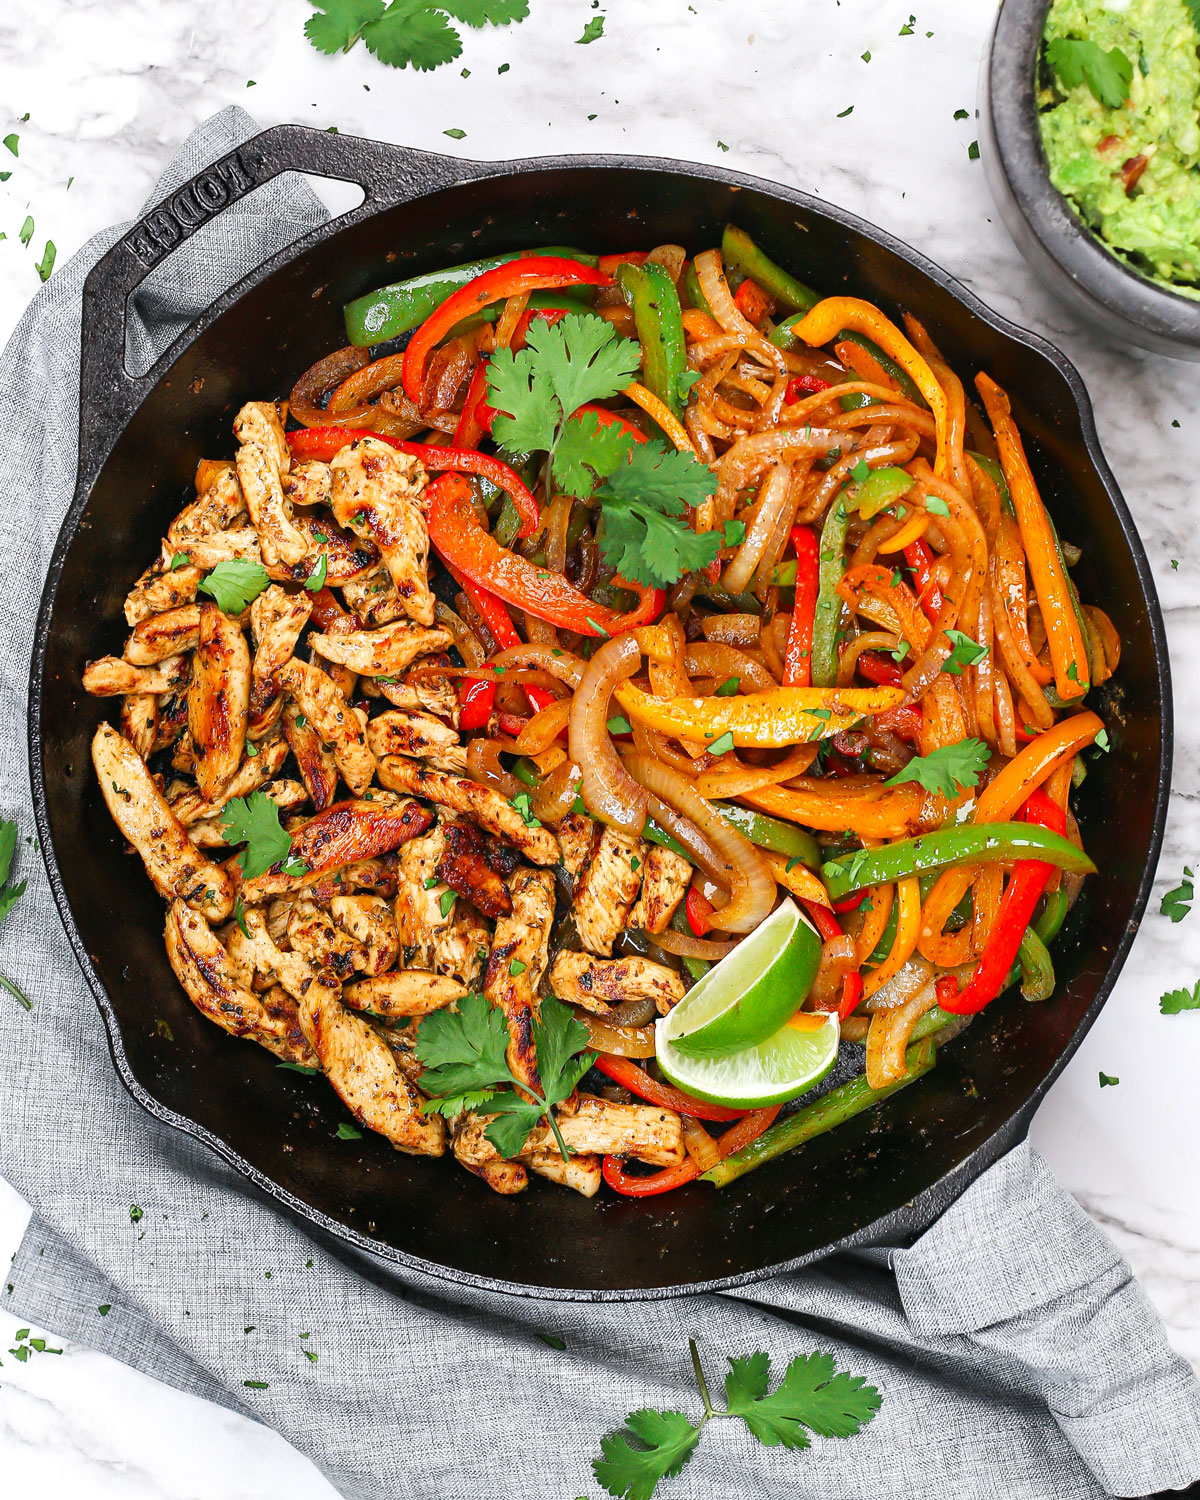 chicken fajitas in a skillet with fresh lime wedges, cilantro, guacamole, and tortillas